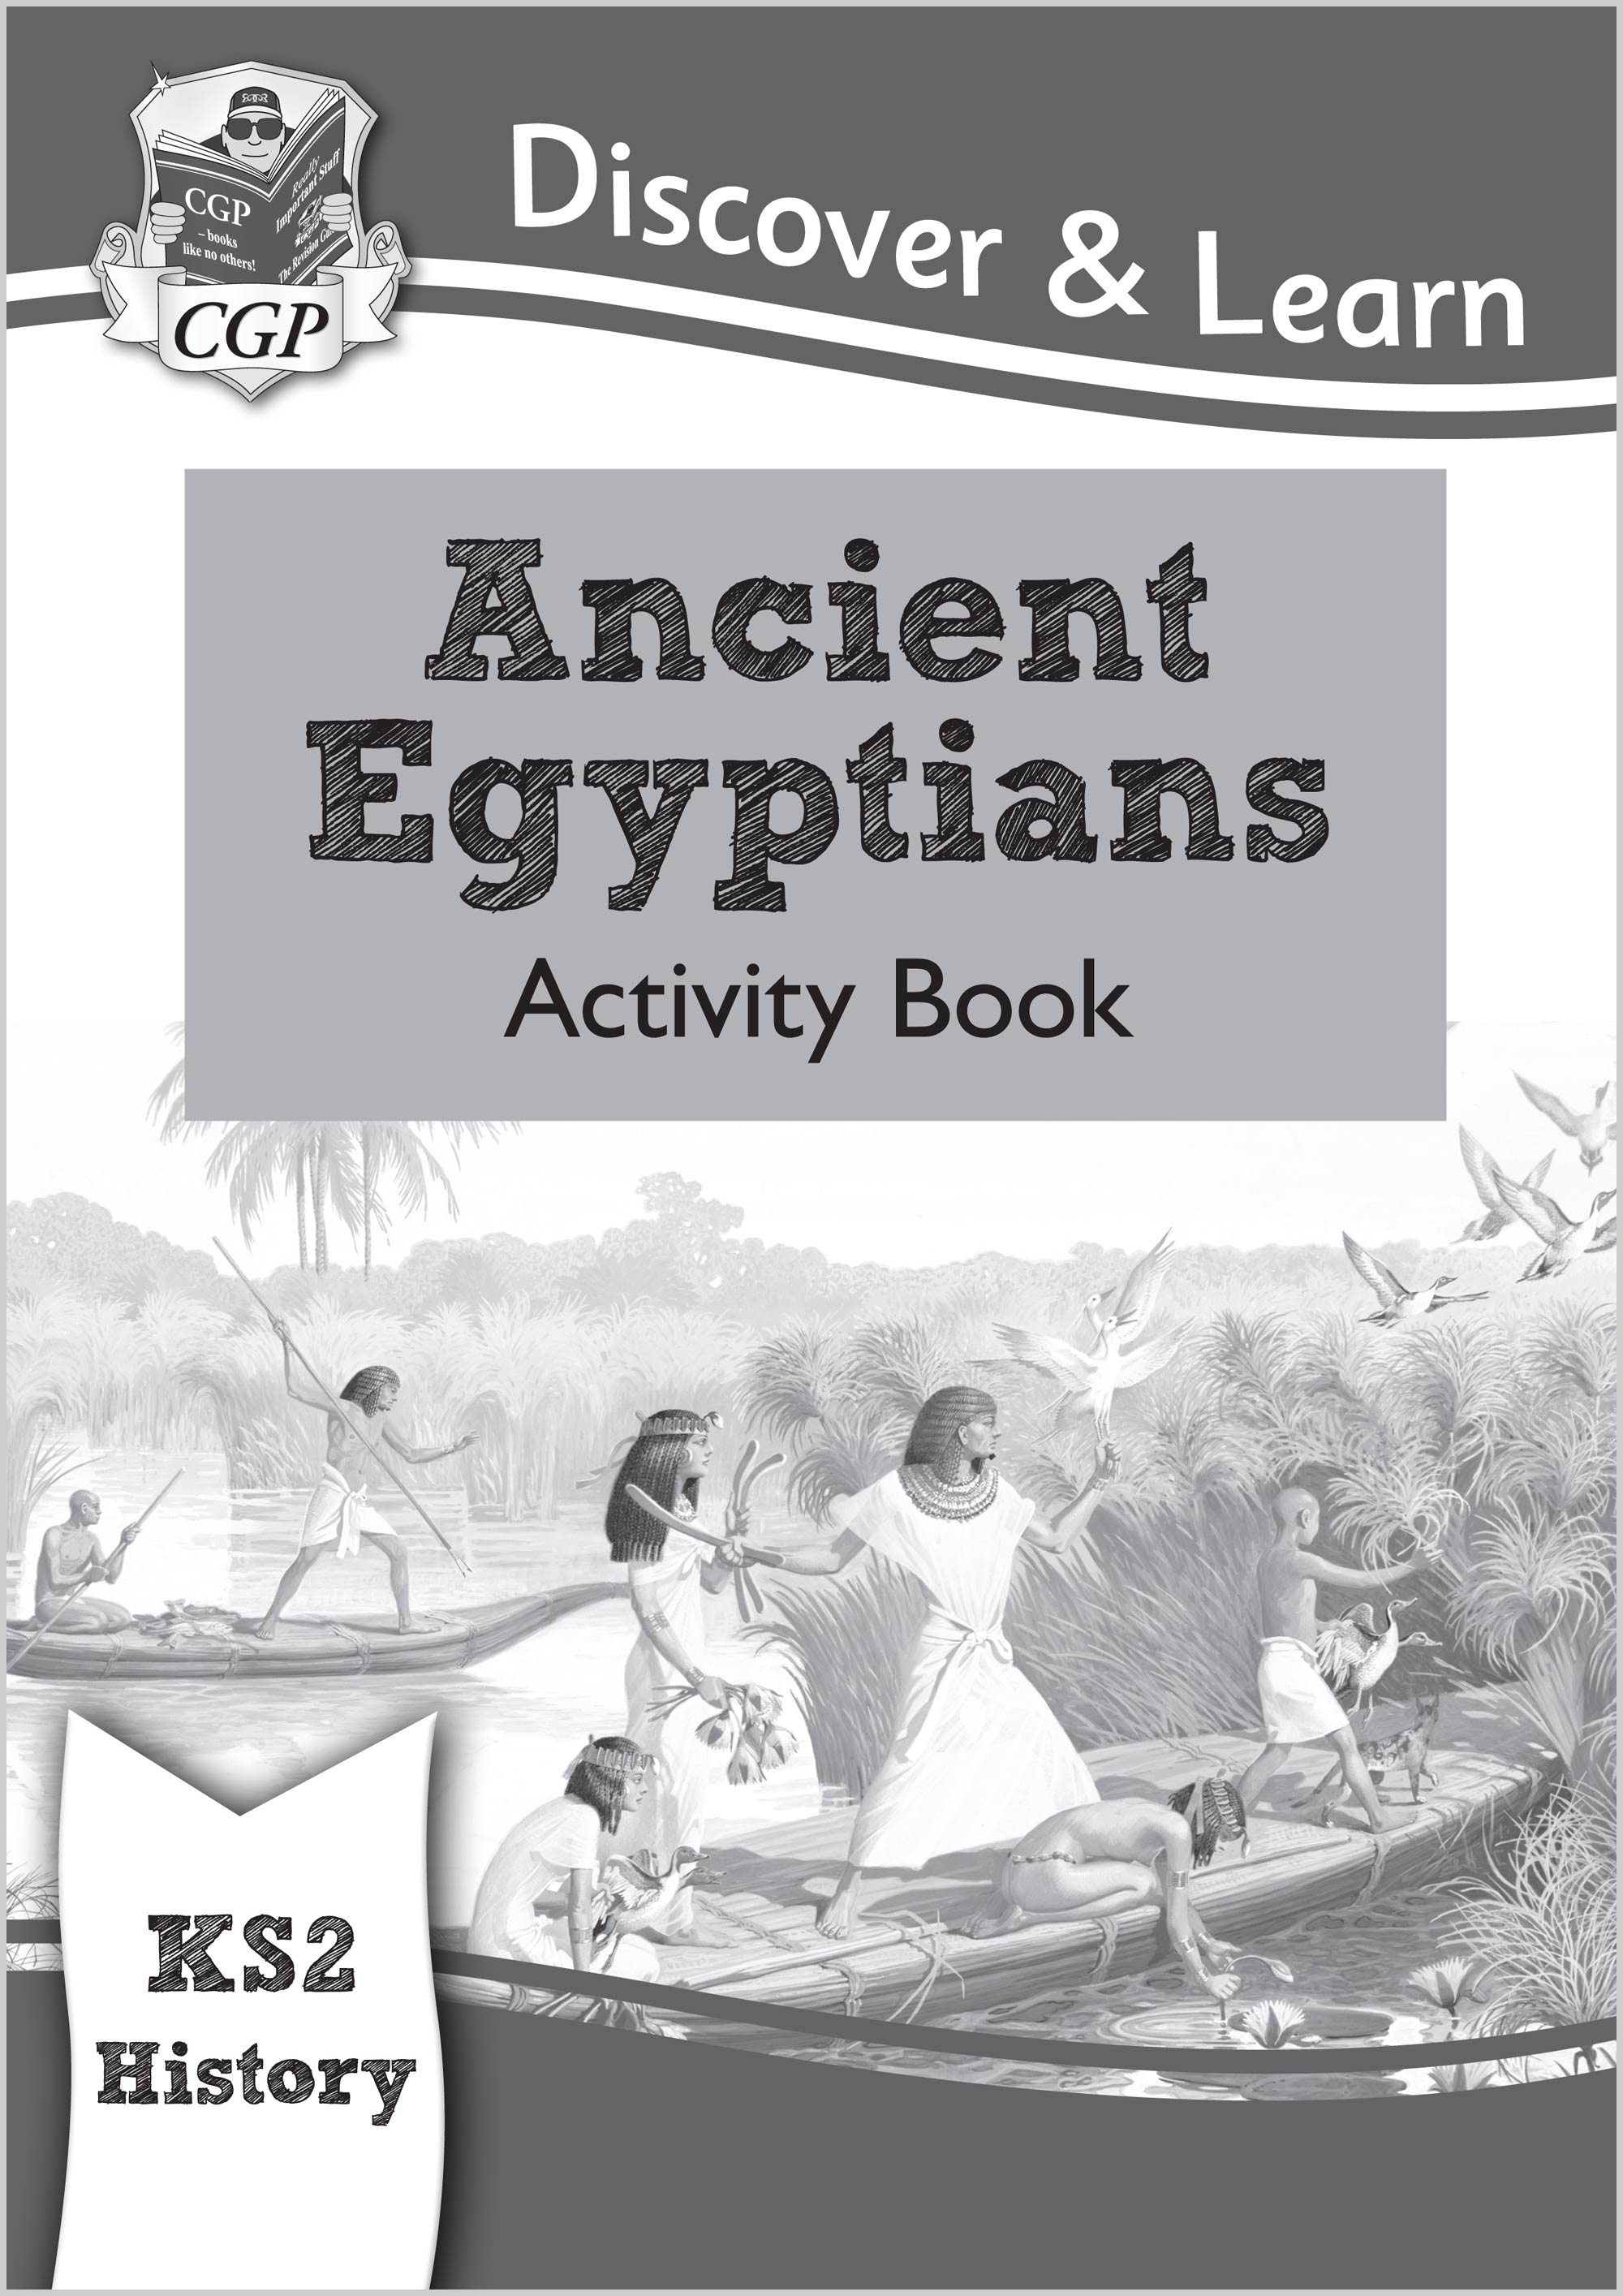 HEW21 - KS2 Discover & Learn: History - Ancient Egyptians Activity Book